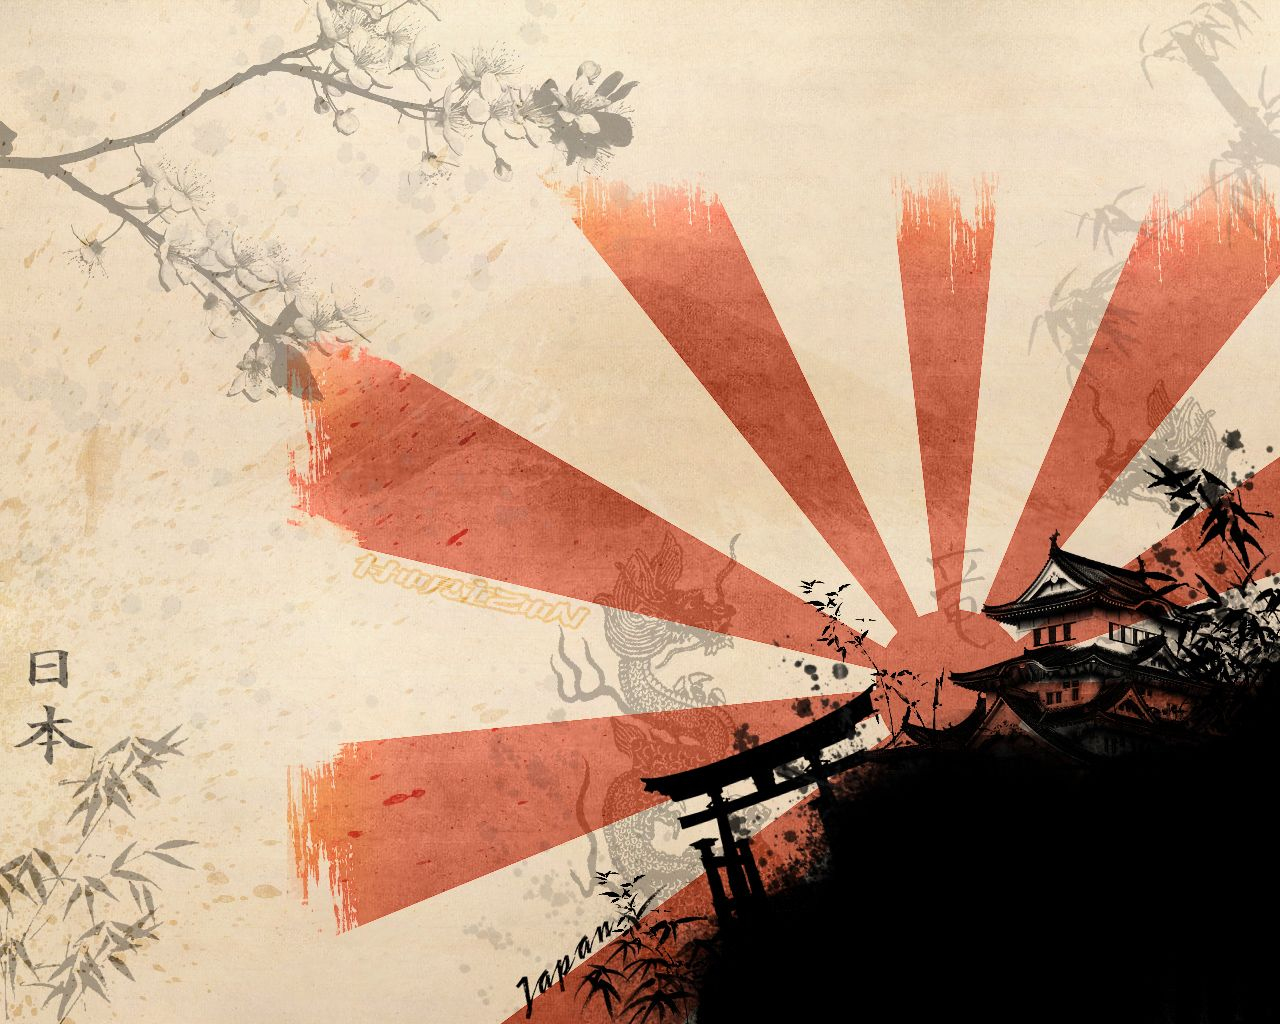 JAPANESE ART | Samurai+Japanese+Wall+Art+and+Cherry+Blossom+Art+Wallpaper  Japan .